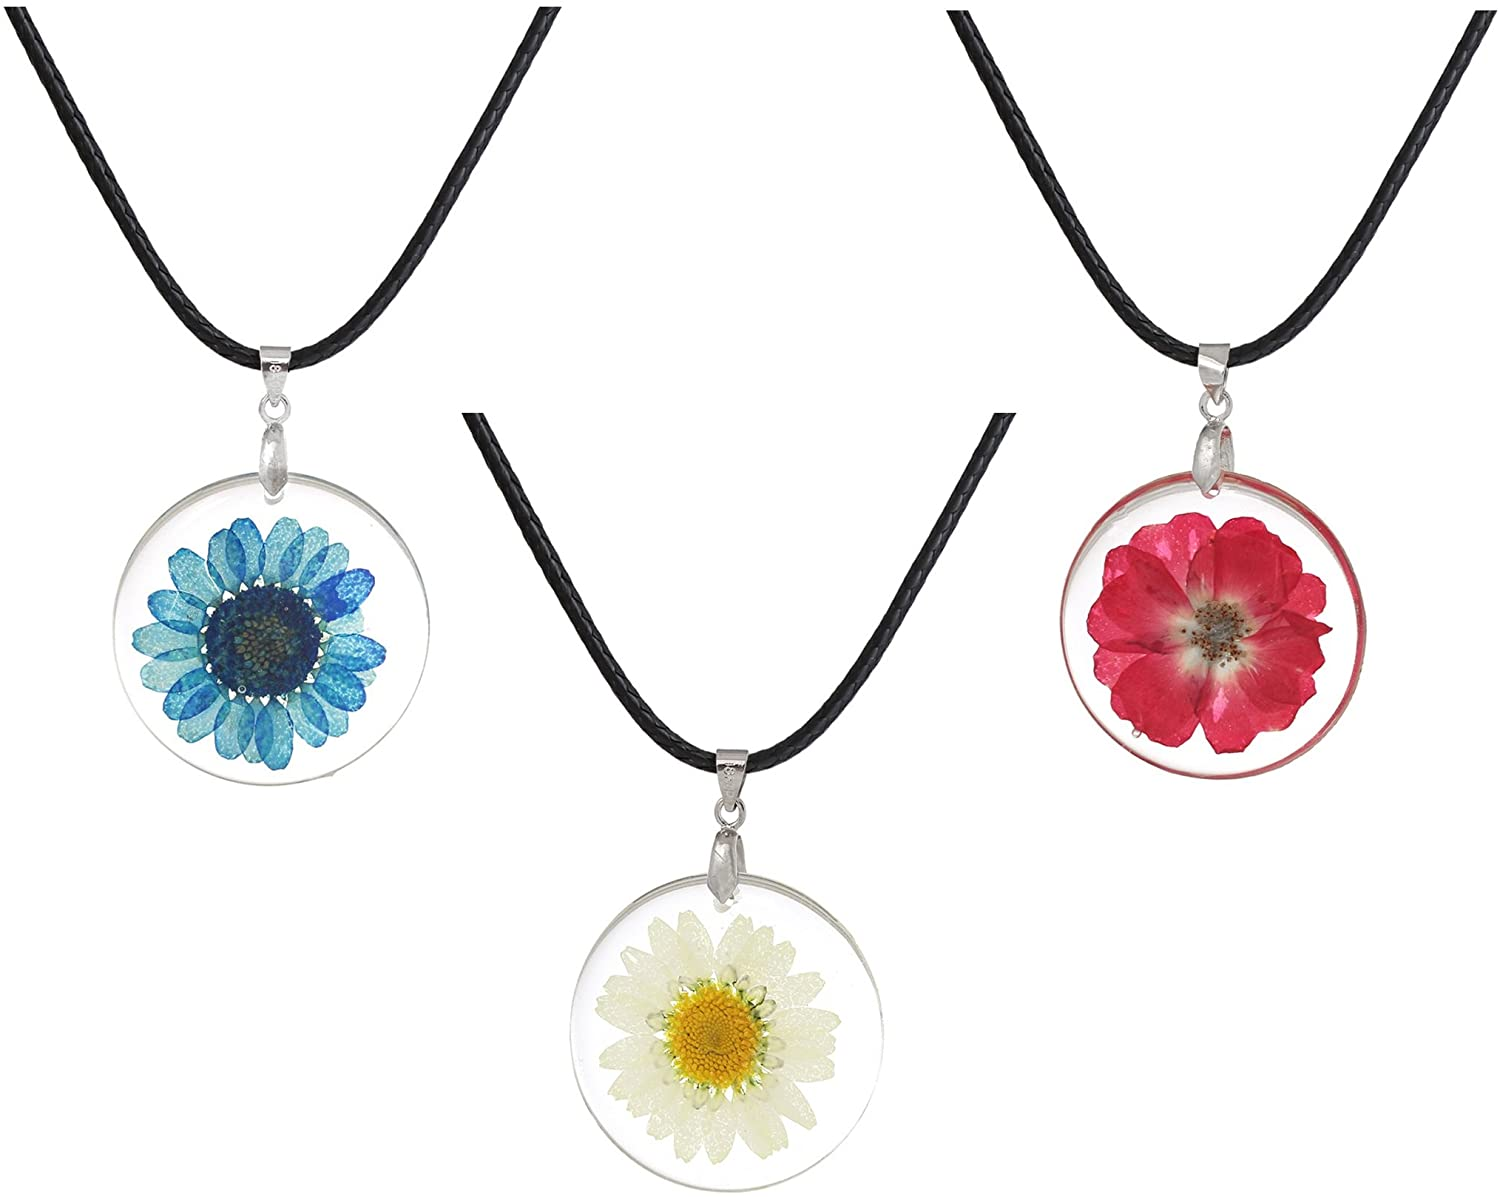 JGFinds Dried Flower Necklace 3 Pack, Resin and Cowhide - Actual Flower